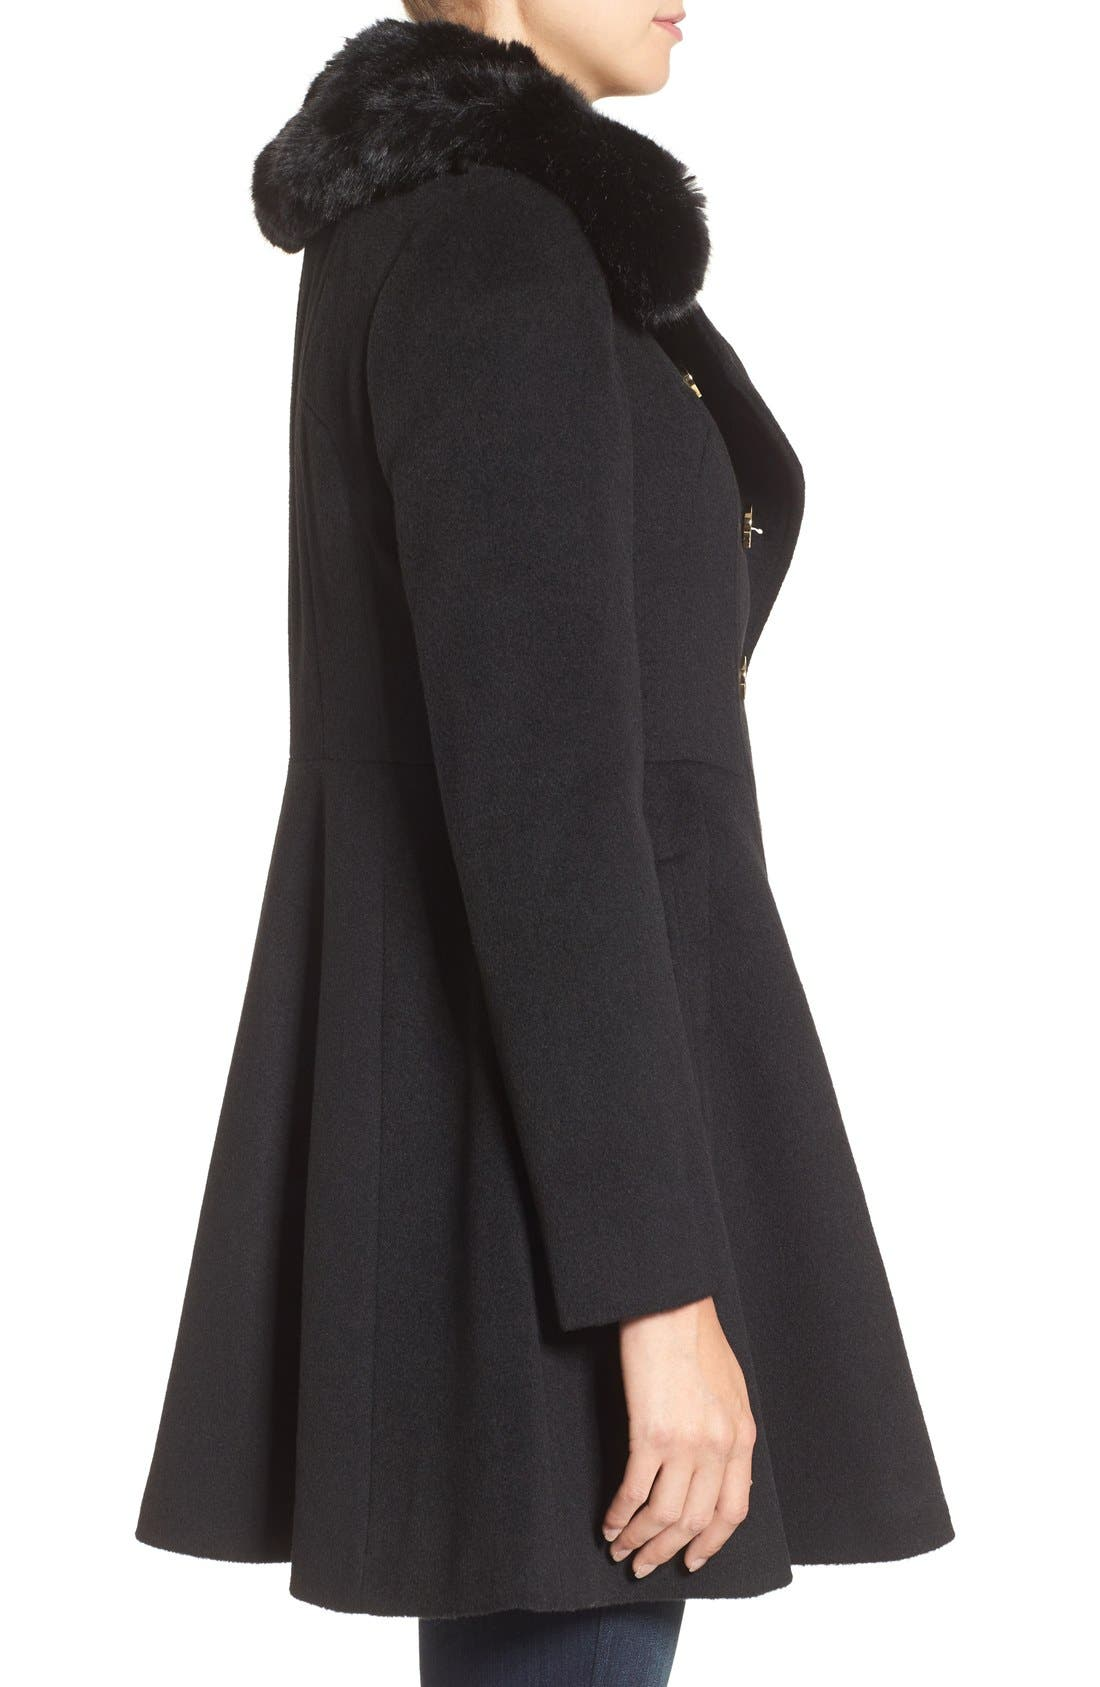 Double Breasted Coat with Faux Fur Collar,                             Alternate thumbnail 3, color,                             Black